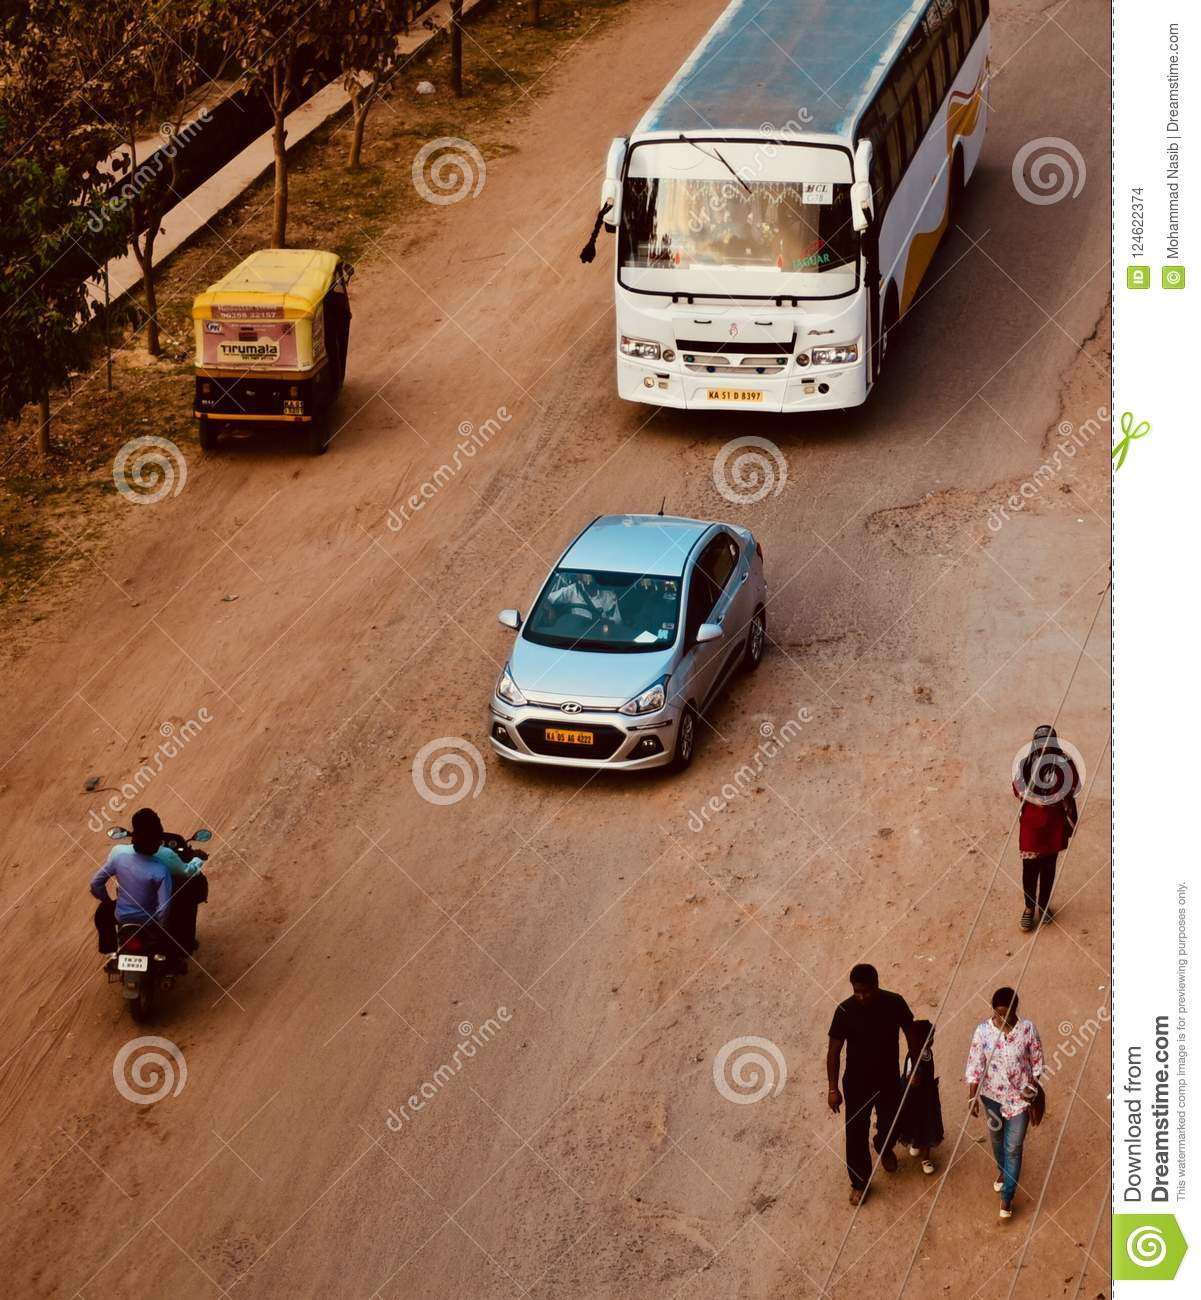 Download Indian Vehicles Are Running In An Urban Road Unique Photo Editorial Stock Image - Image of running, bangalore: 124622374